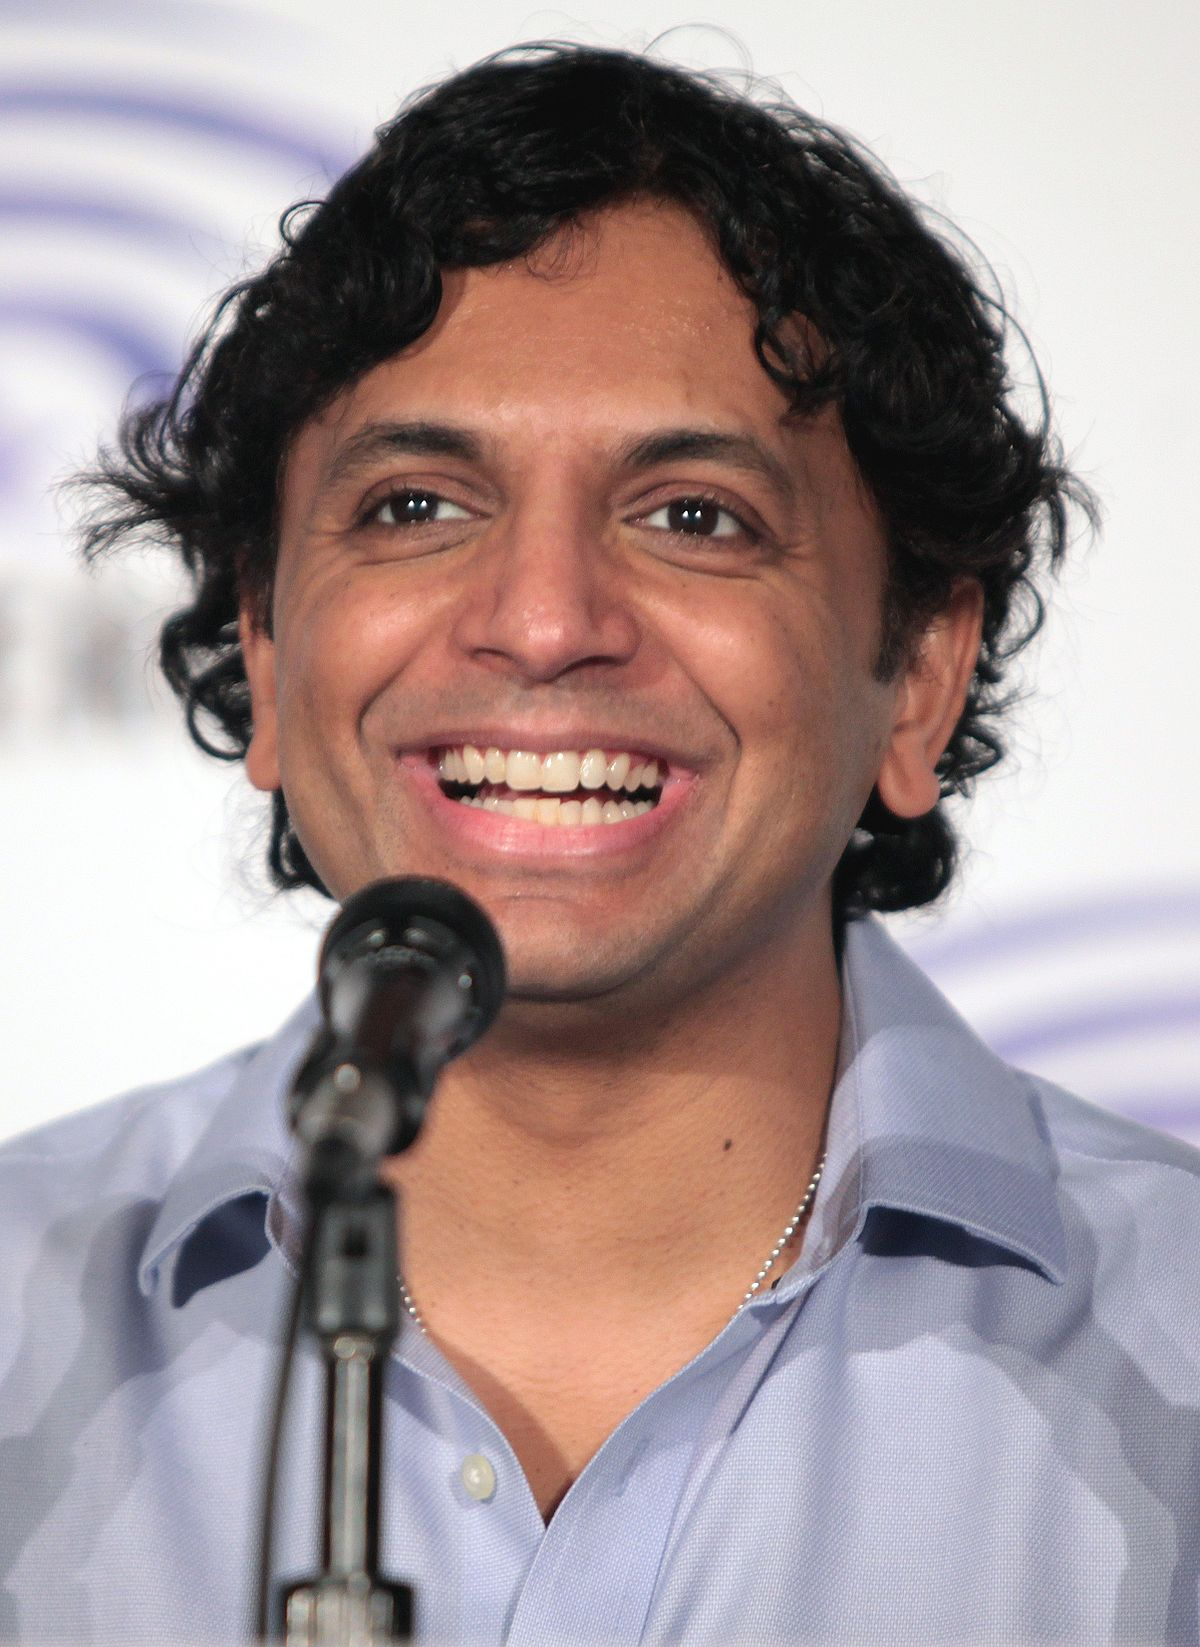 M Night Shyamalan M. Night Shyamalan - W...